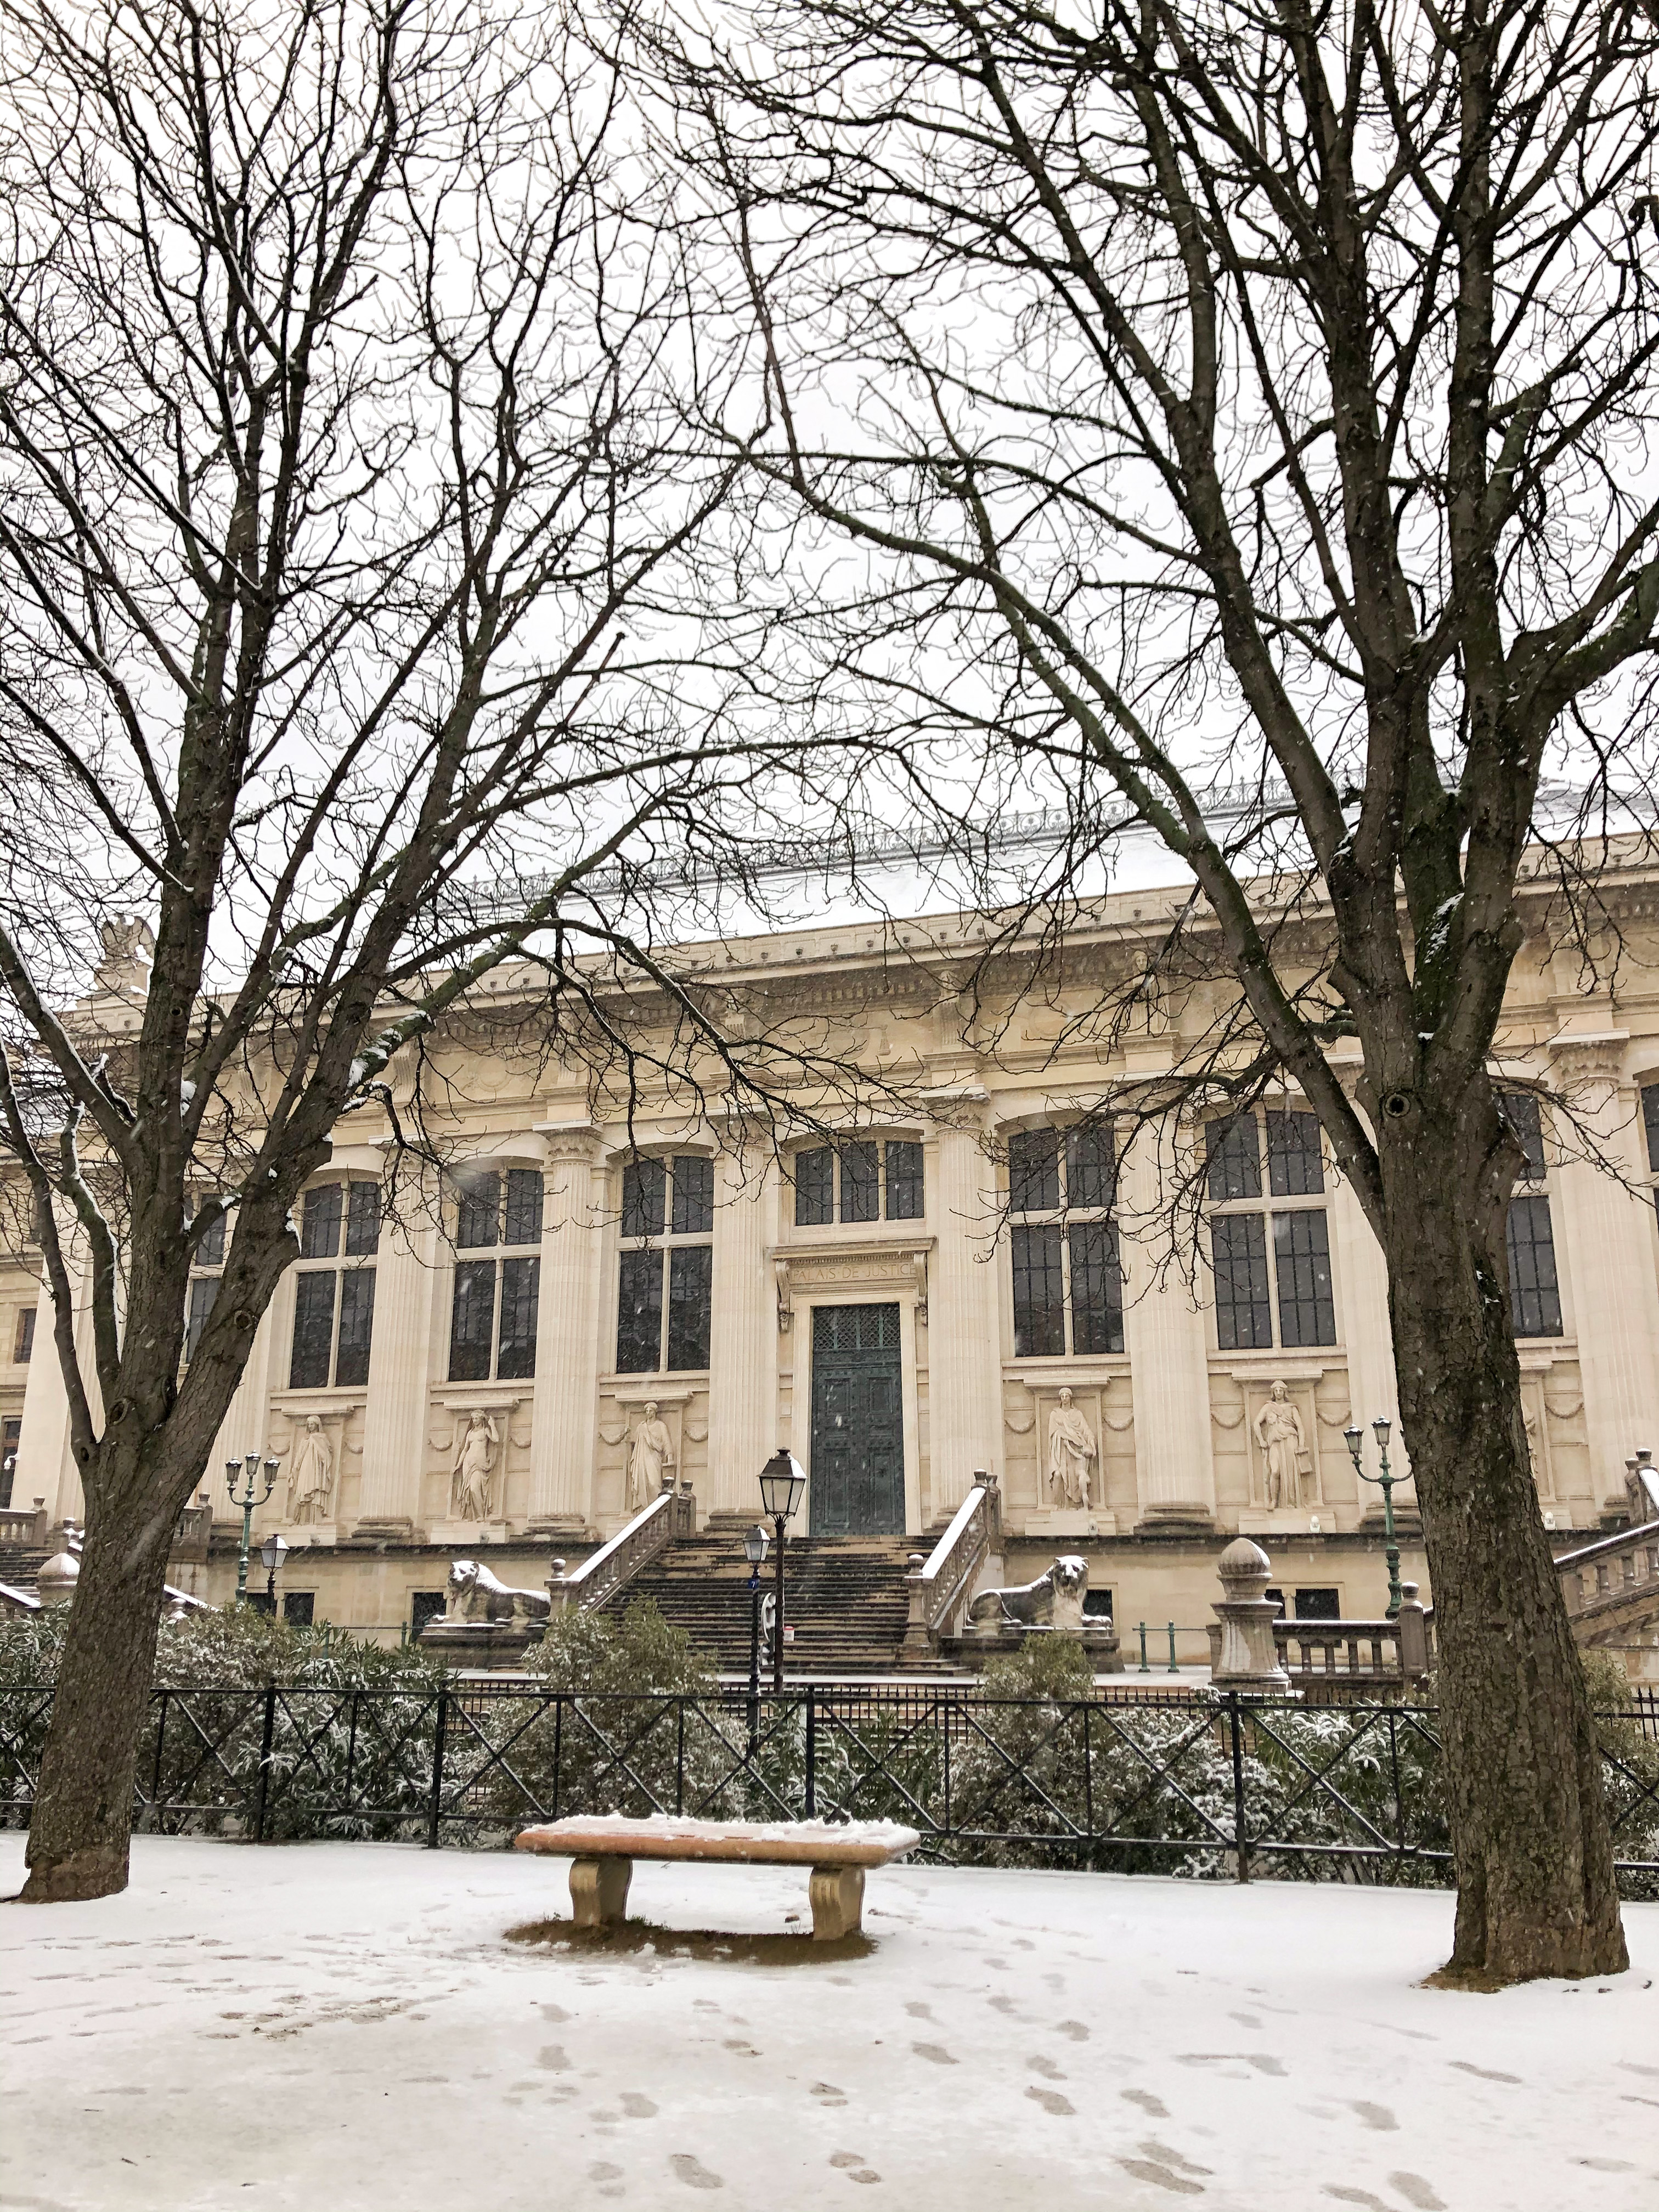 Paris sous la neige guide paris